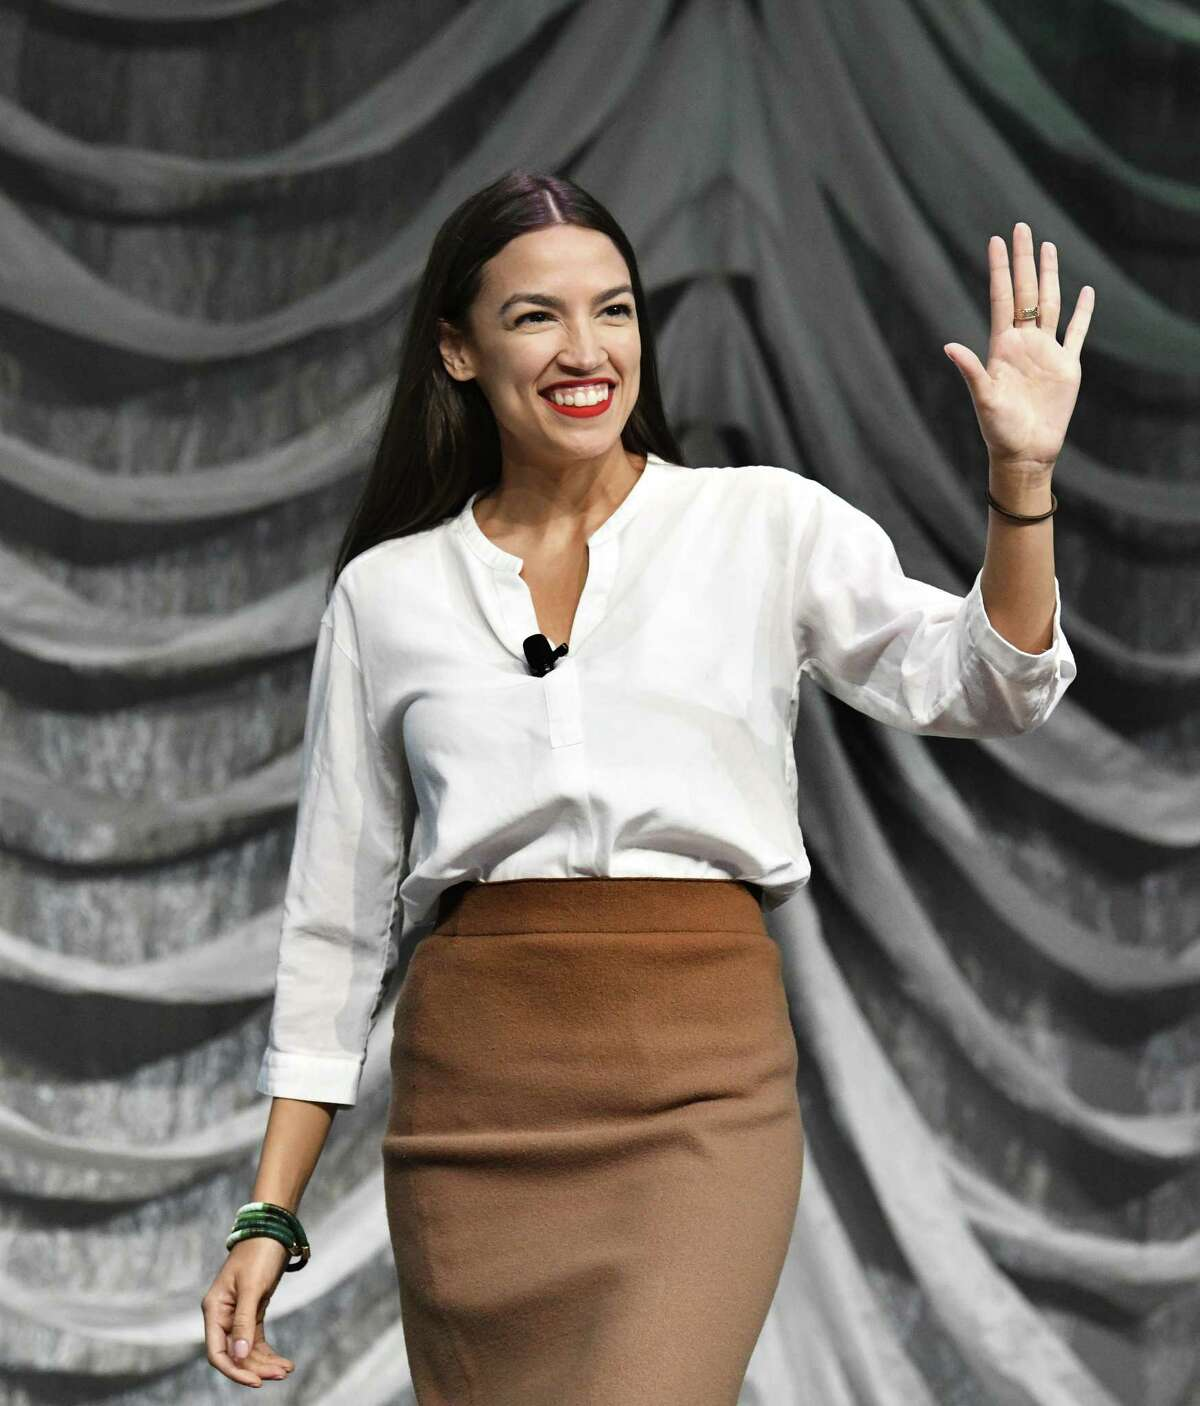 New York U.S. Rep. Alexandria Ocasio-Cortez enters the stage for her conversation with Briahna Joy Gray about about identity, race and class at the Austin Convention Center during the SXSW Conference & Festivals on Saturday, March 9, 2019.